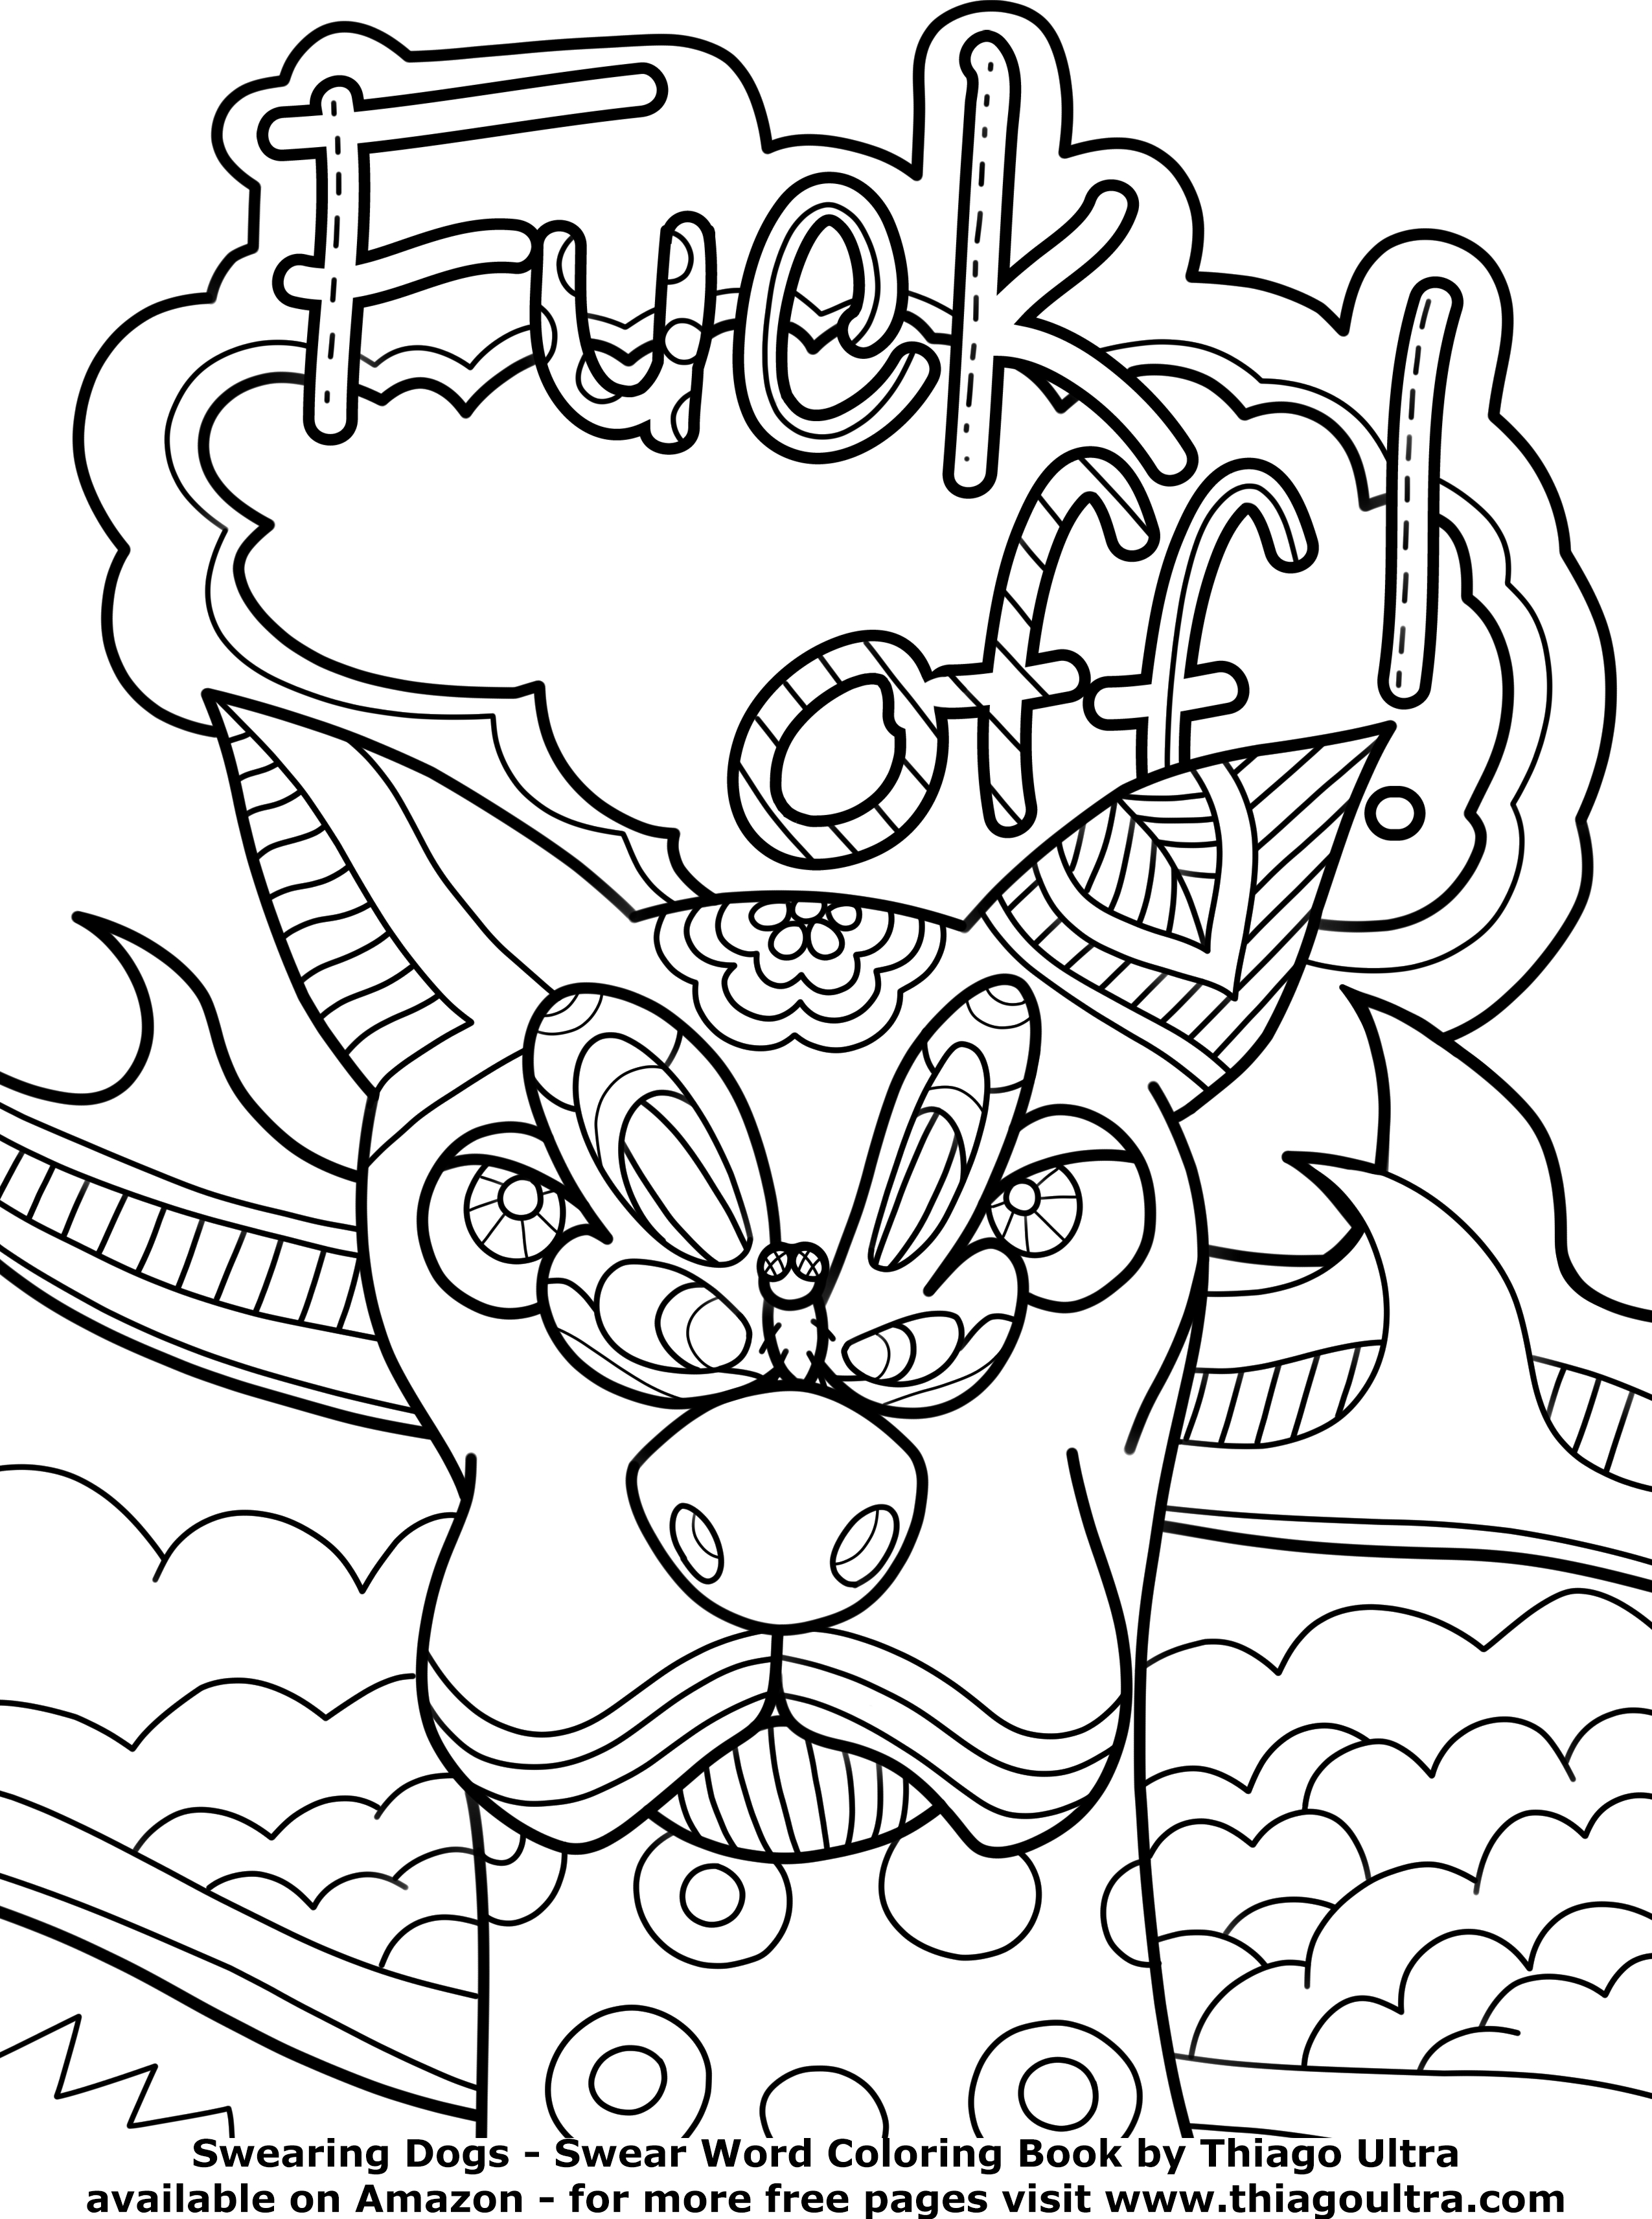 Robot Check | Bible coloring pages, Bible verse coloring page ... | 3425x2550